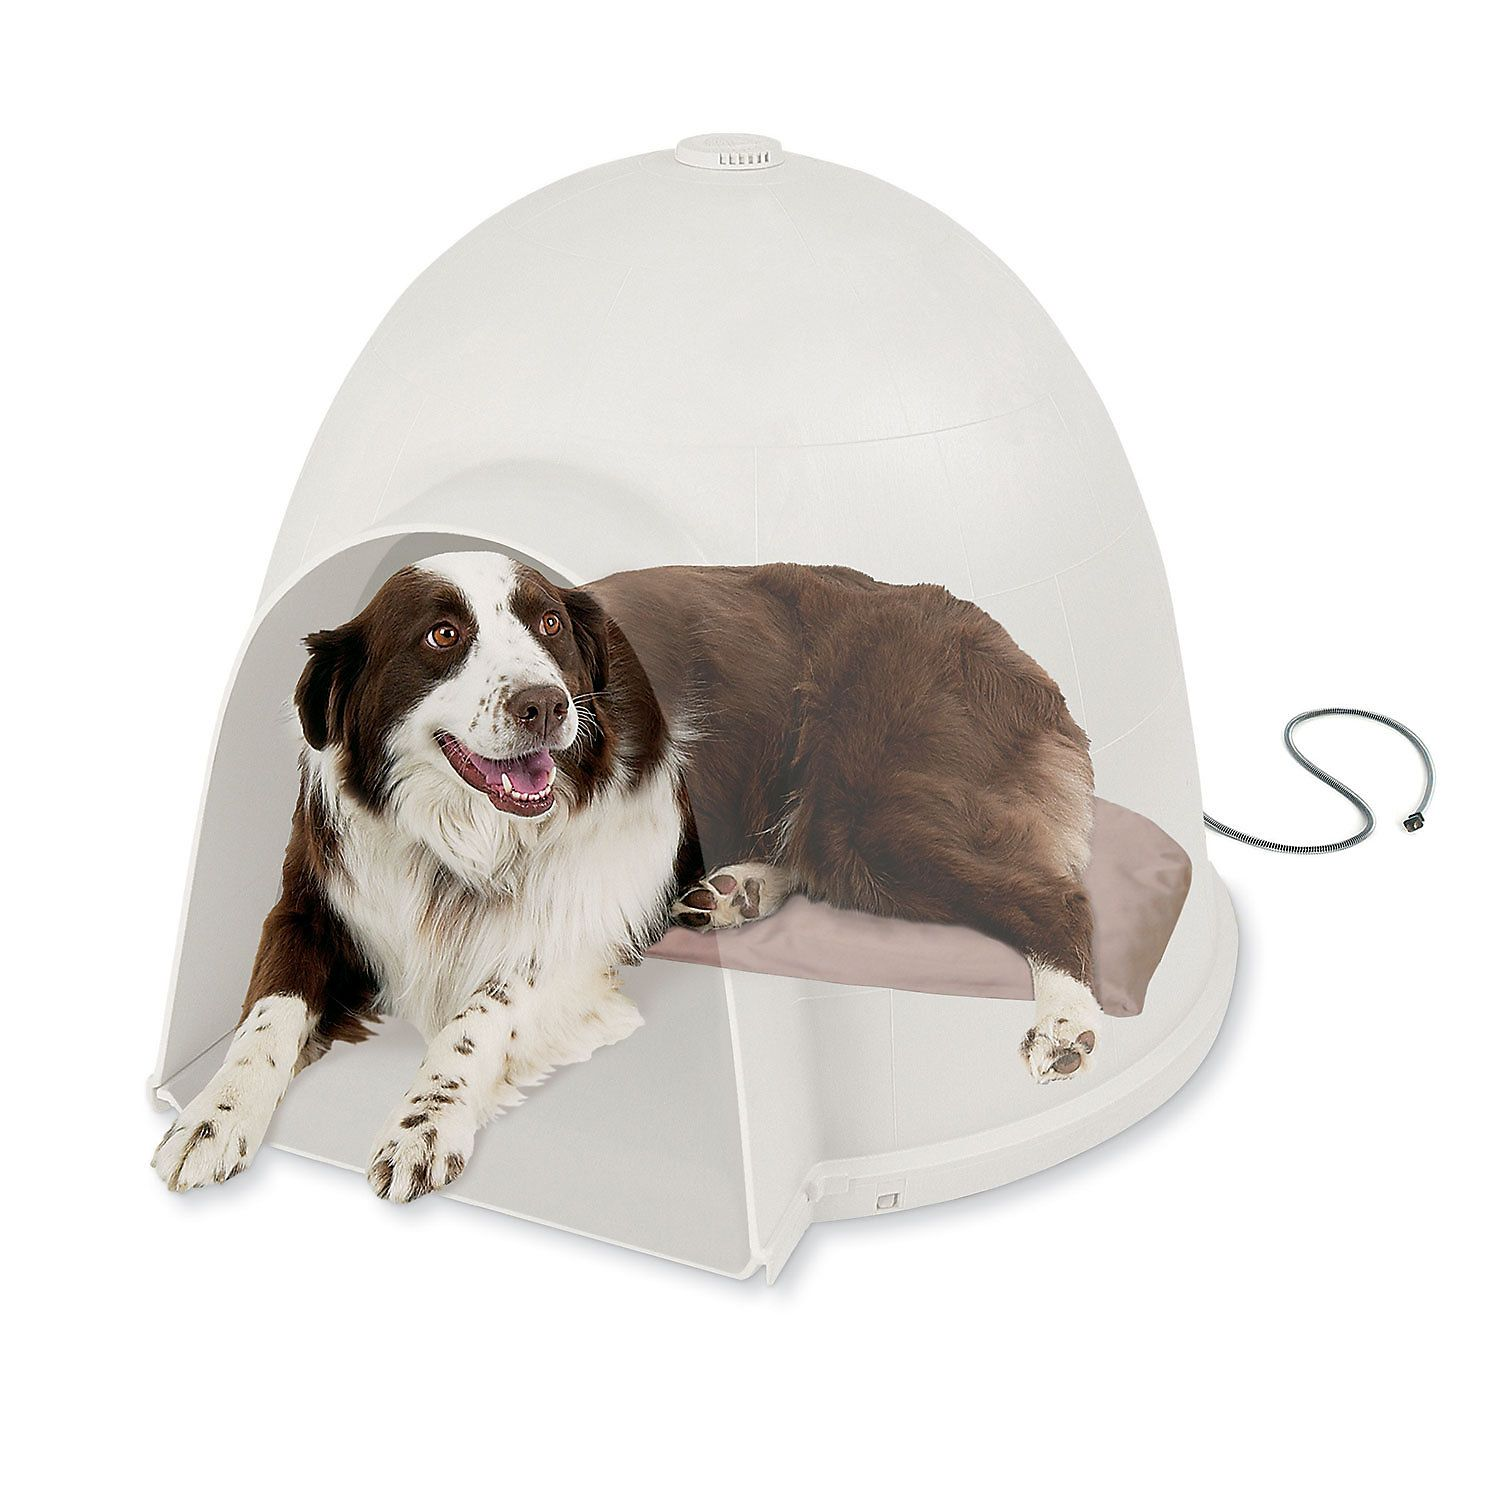 K H Lectro Soft Igloo Style Heated Dog Bed 17 5 L X 30 W